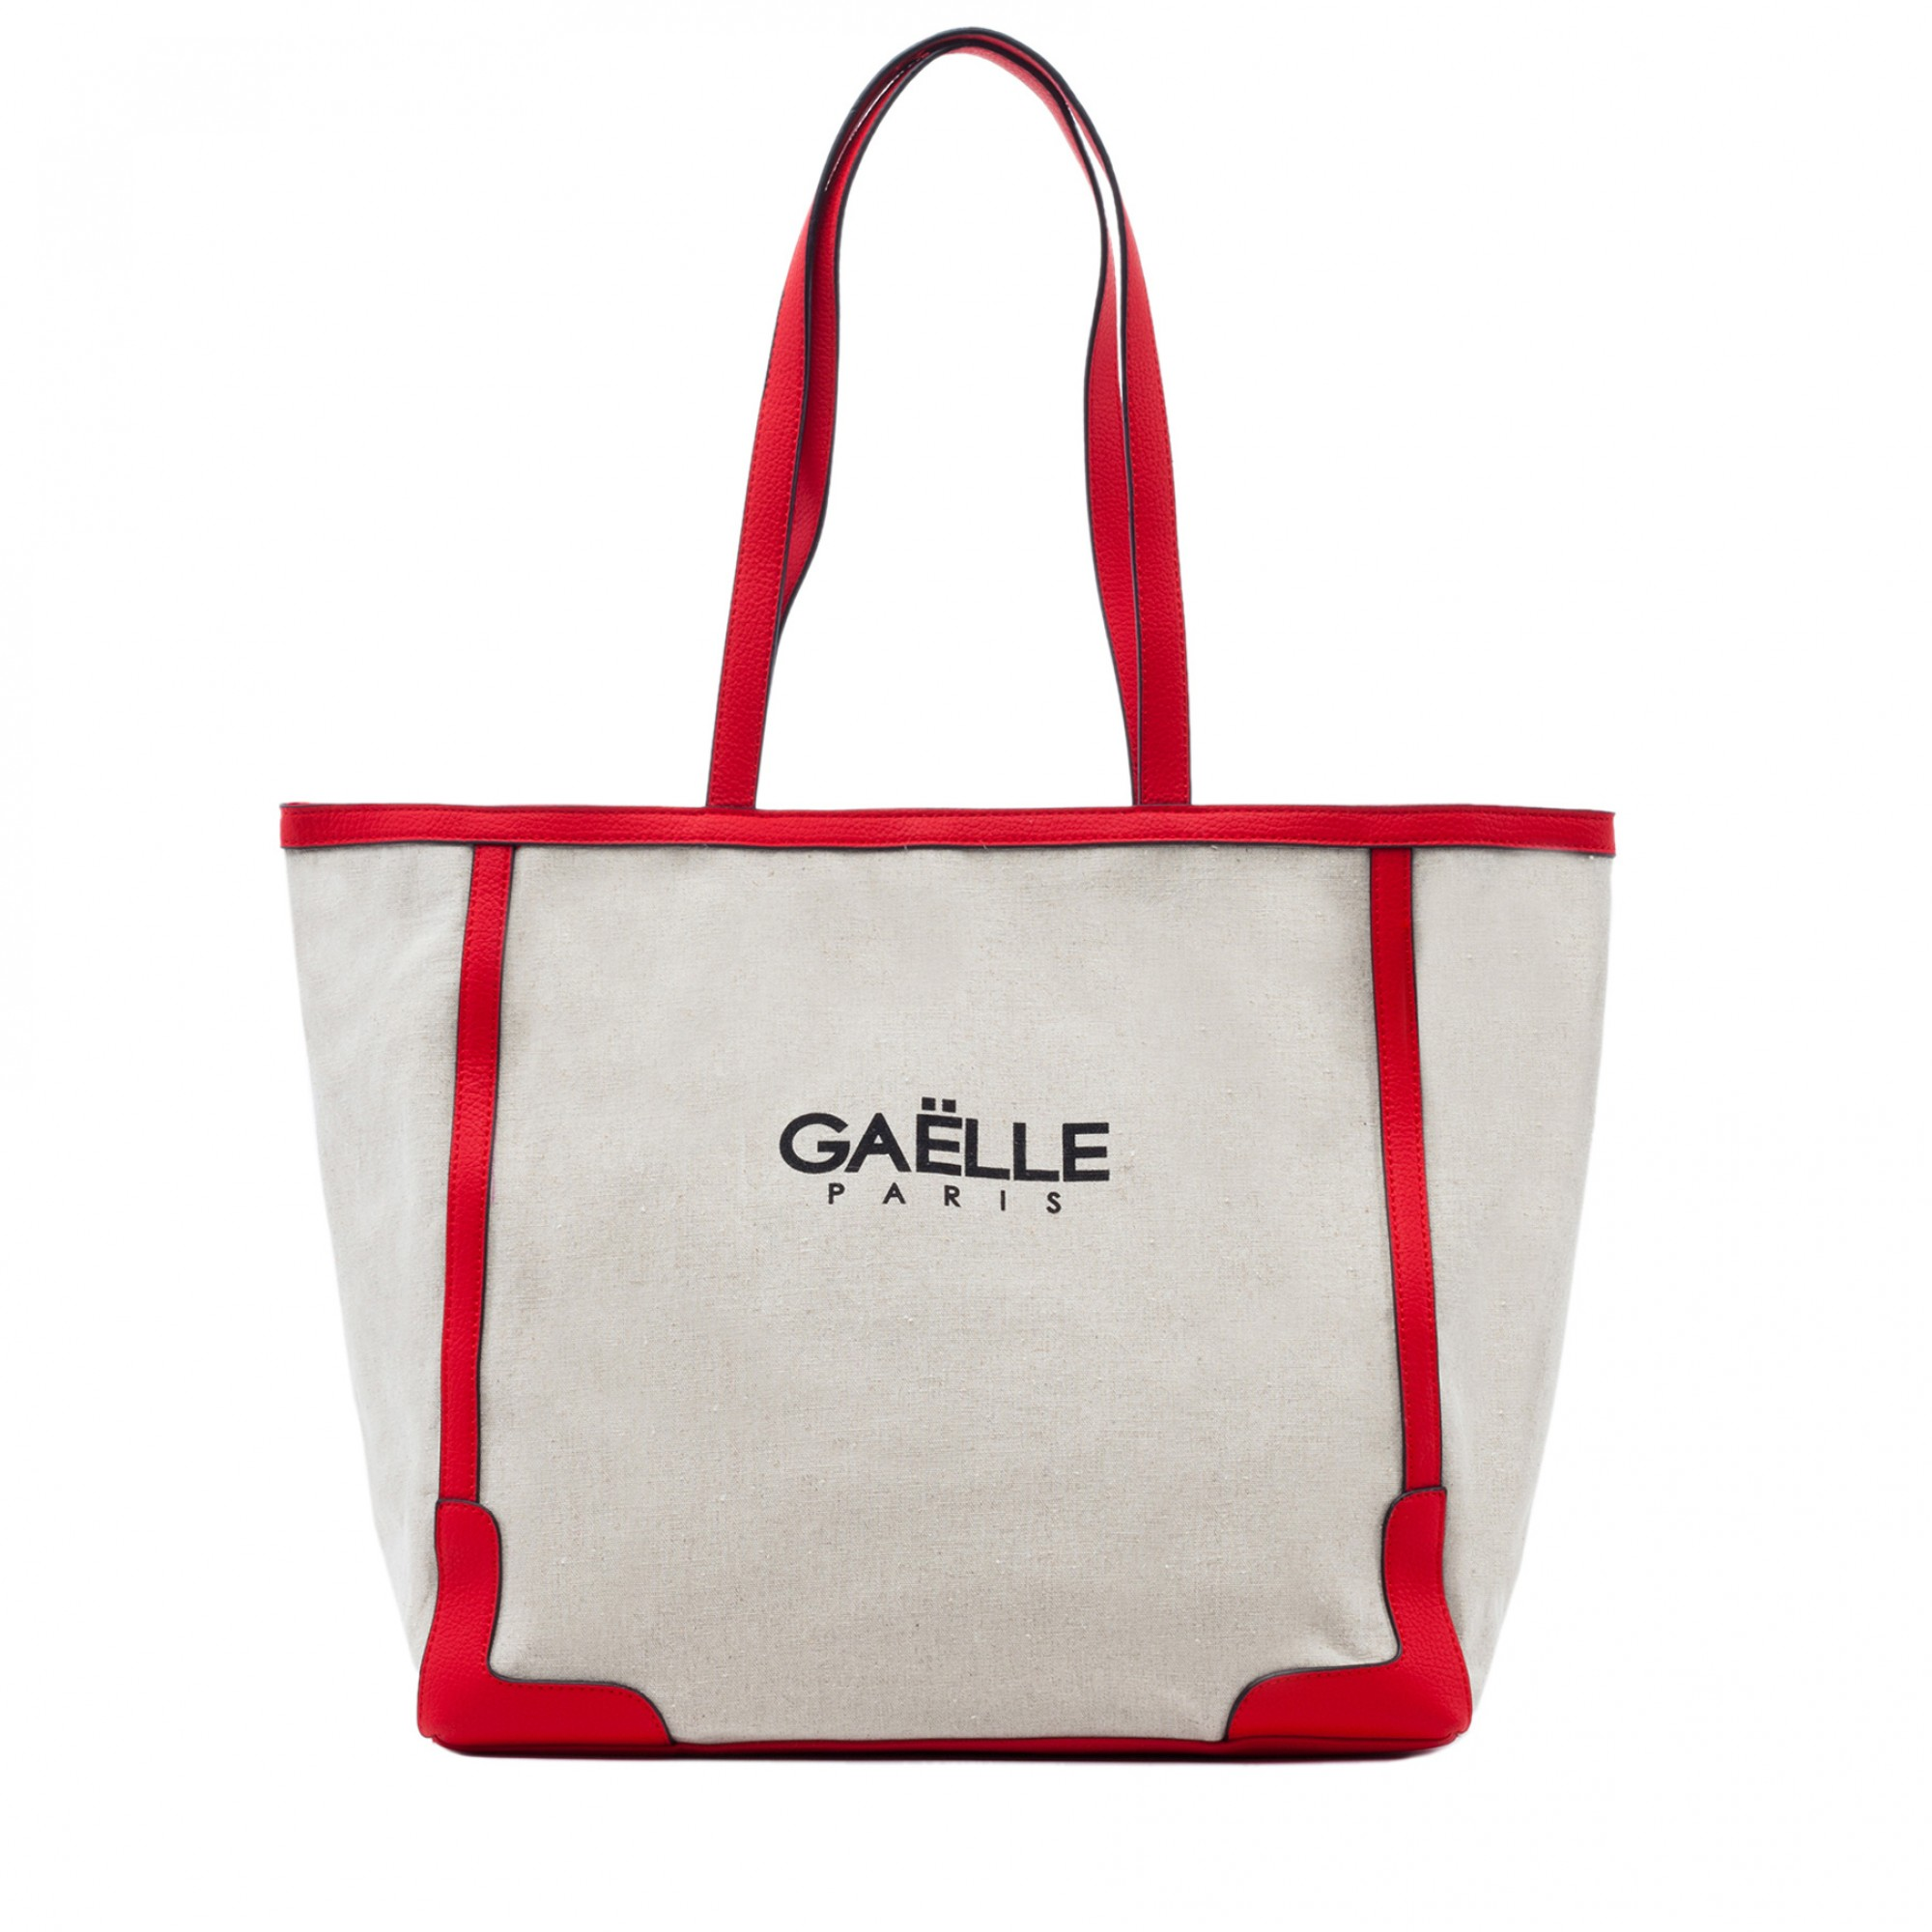 SHOPPING - GBDA750 - GAELLE PARIS